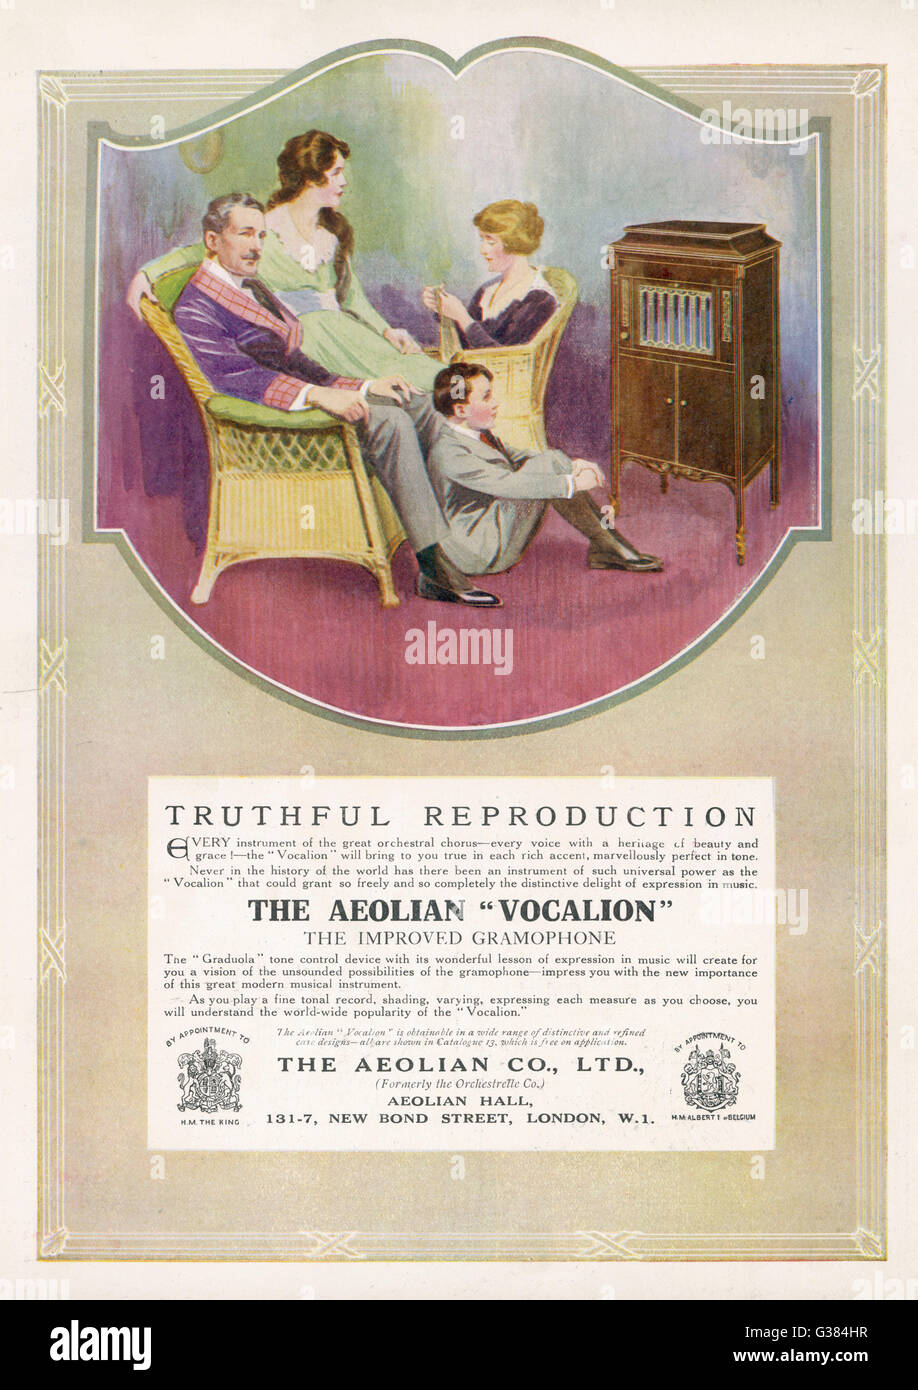 'Truthful Reproduction' - the Aeolian 'Vocalion'  delights the family        Date: 1917 - Stock Image